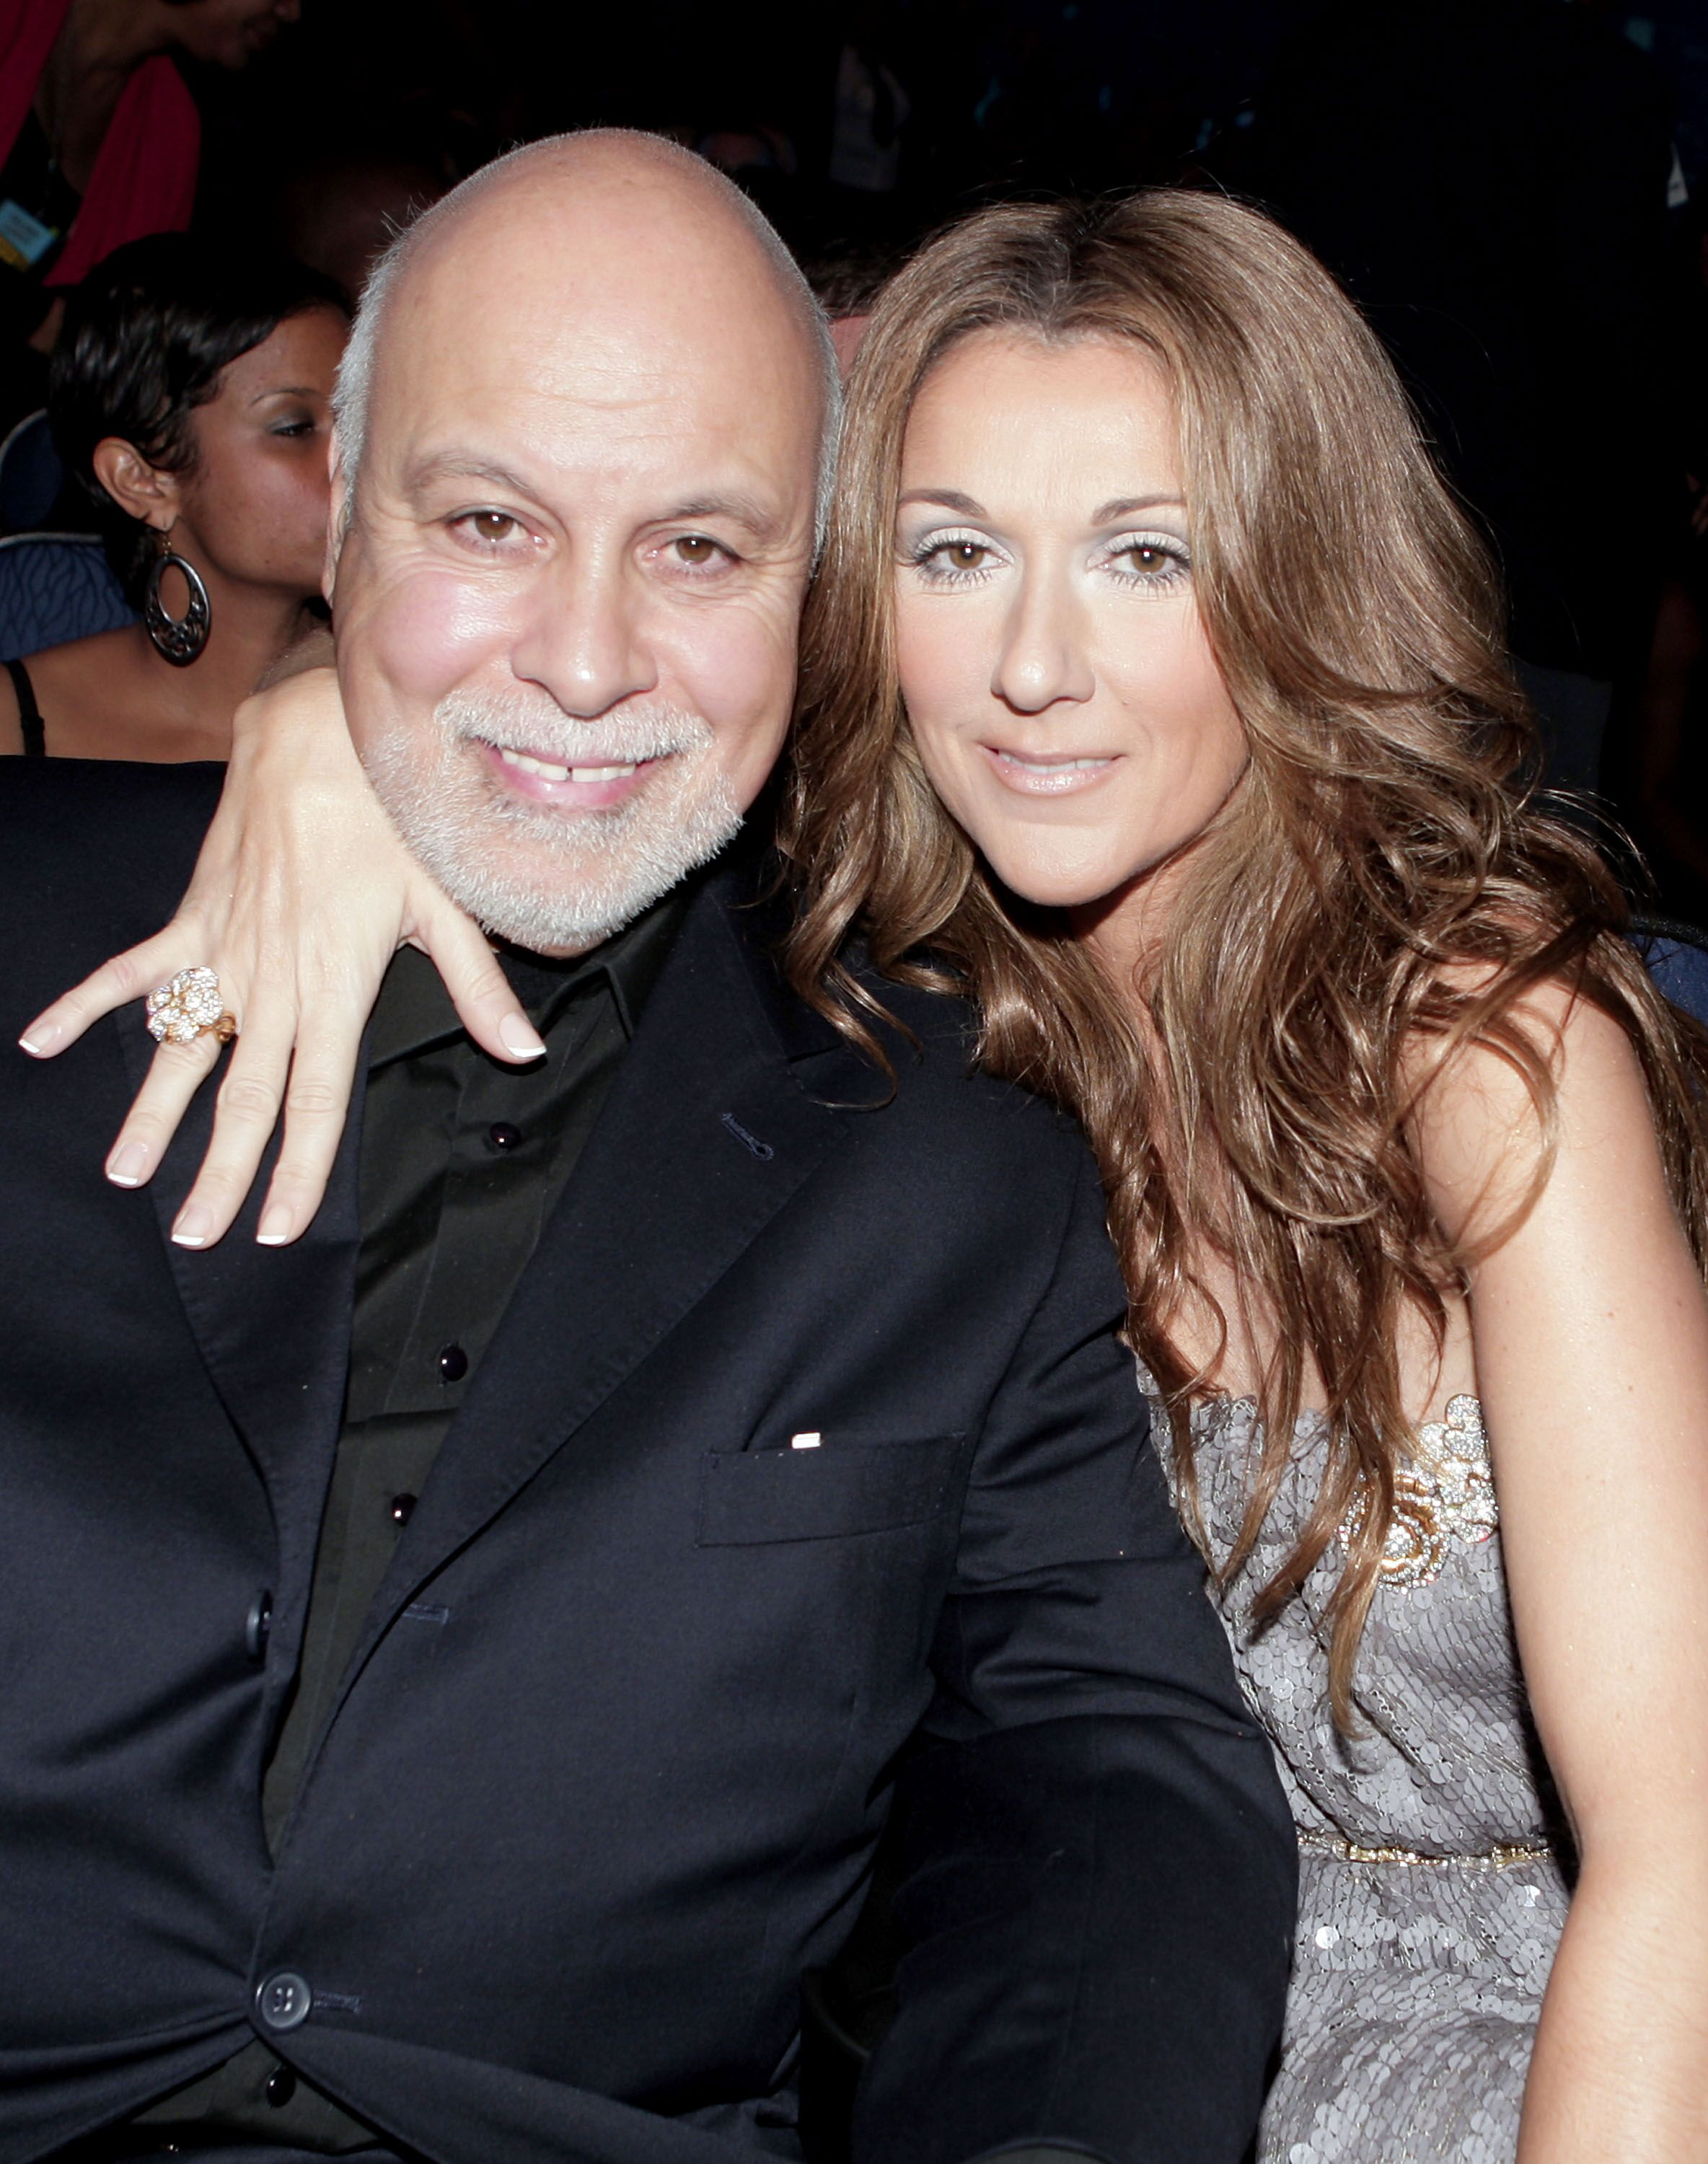 Rene Angelil and Singer Celine Dion in the audience during the 2007 American Music Awards held at the Nokia Theatre L.A. LIVE on November 18, 2007 in Los Angeles, California.   Source: Getty Images